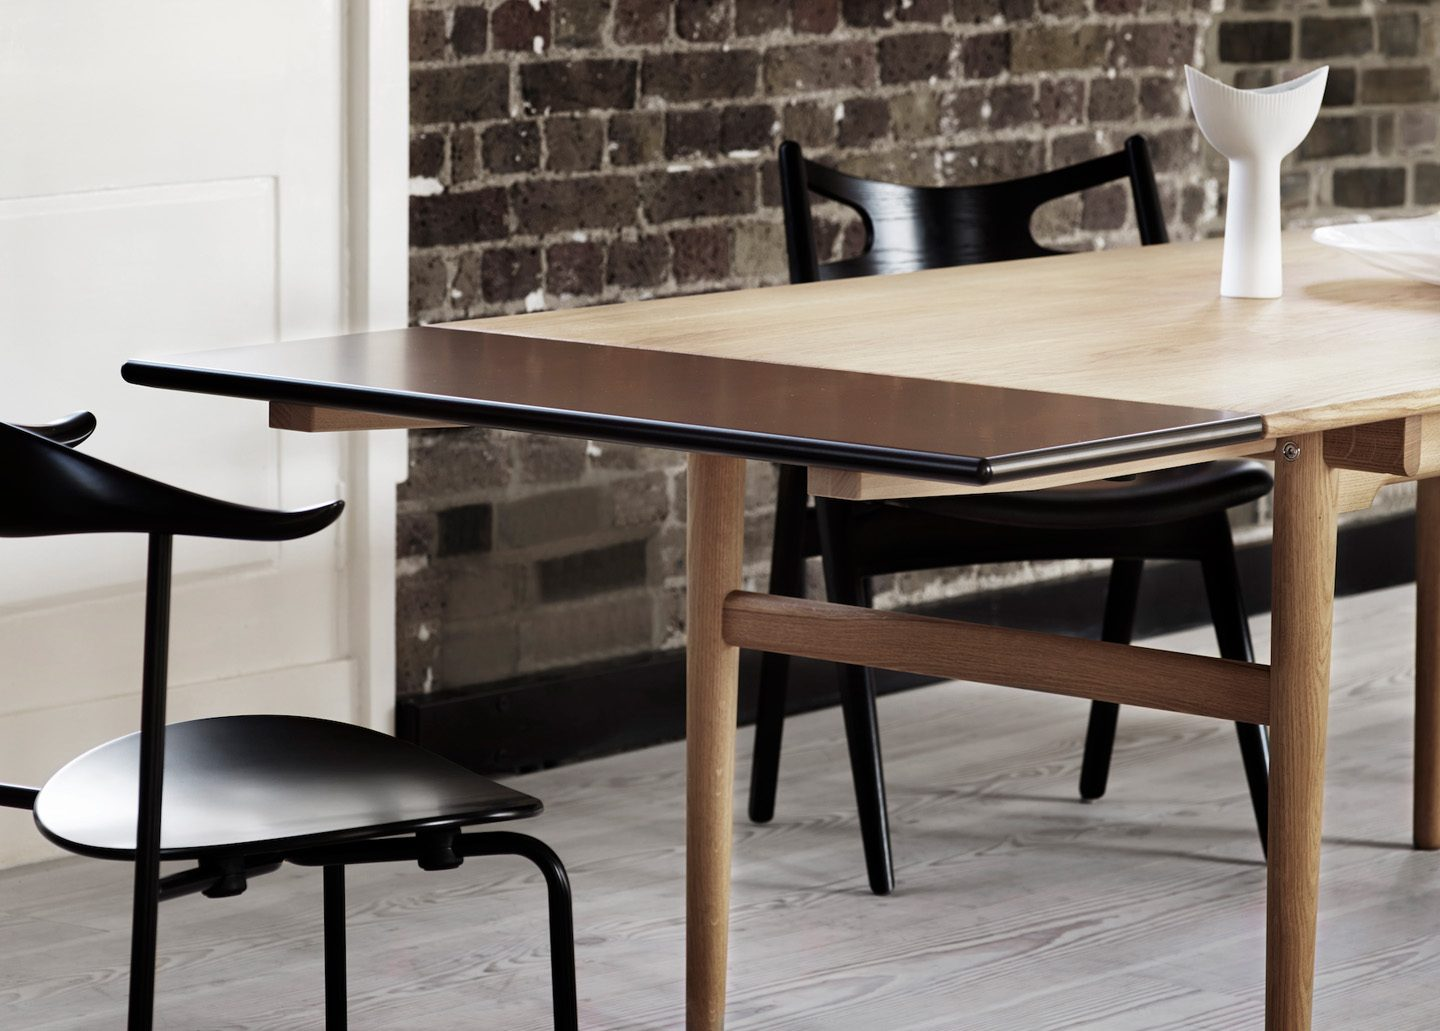 CH327 DINING TABLE AND EXTENSION LEAF EX-DISPLAY BY CARL HANSEN